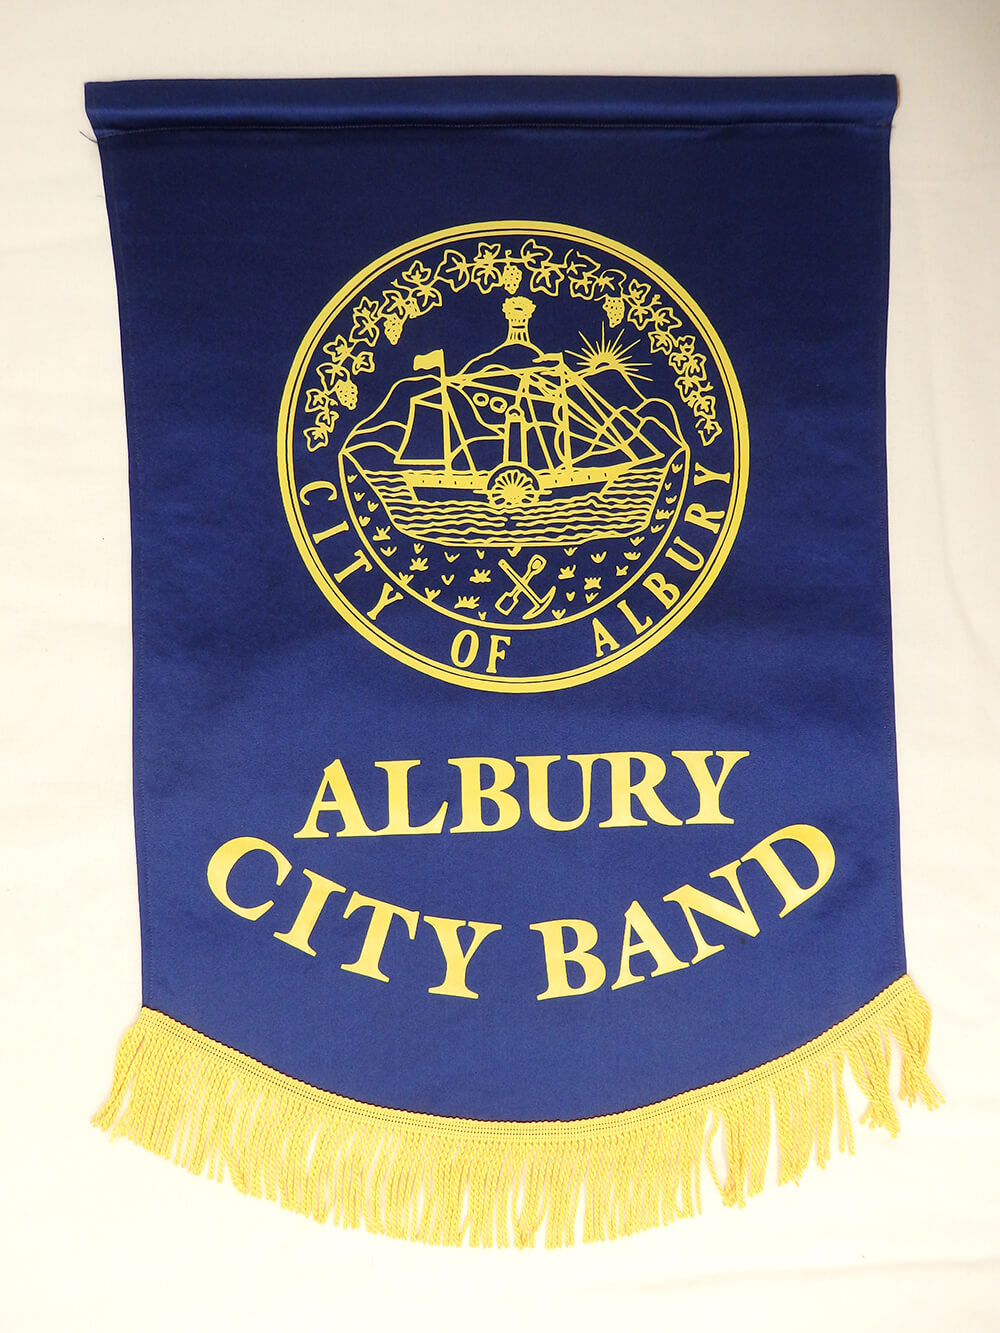 A music stand banner, from the Albury City Band. Blue leather with gold fringe on the bottom. ARM 90.106.